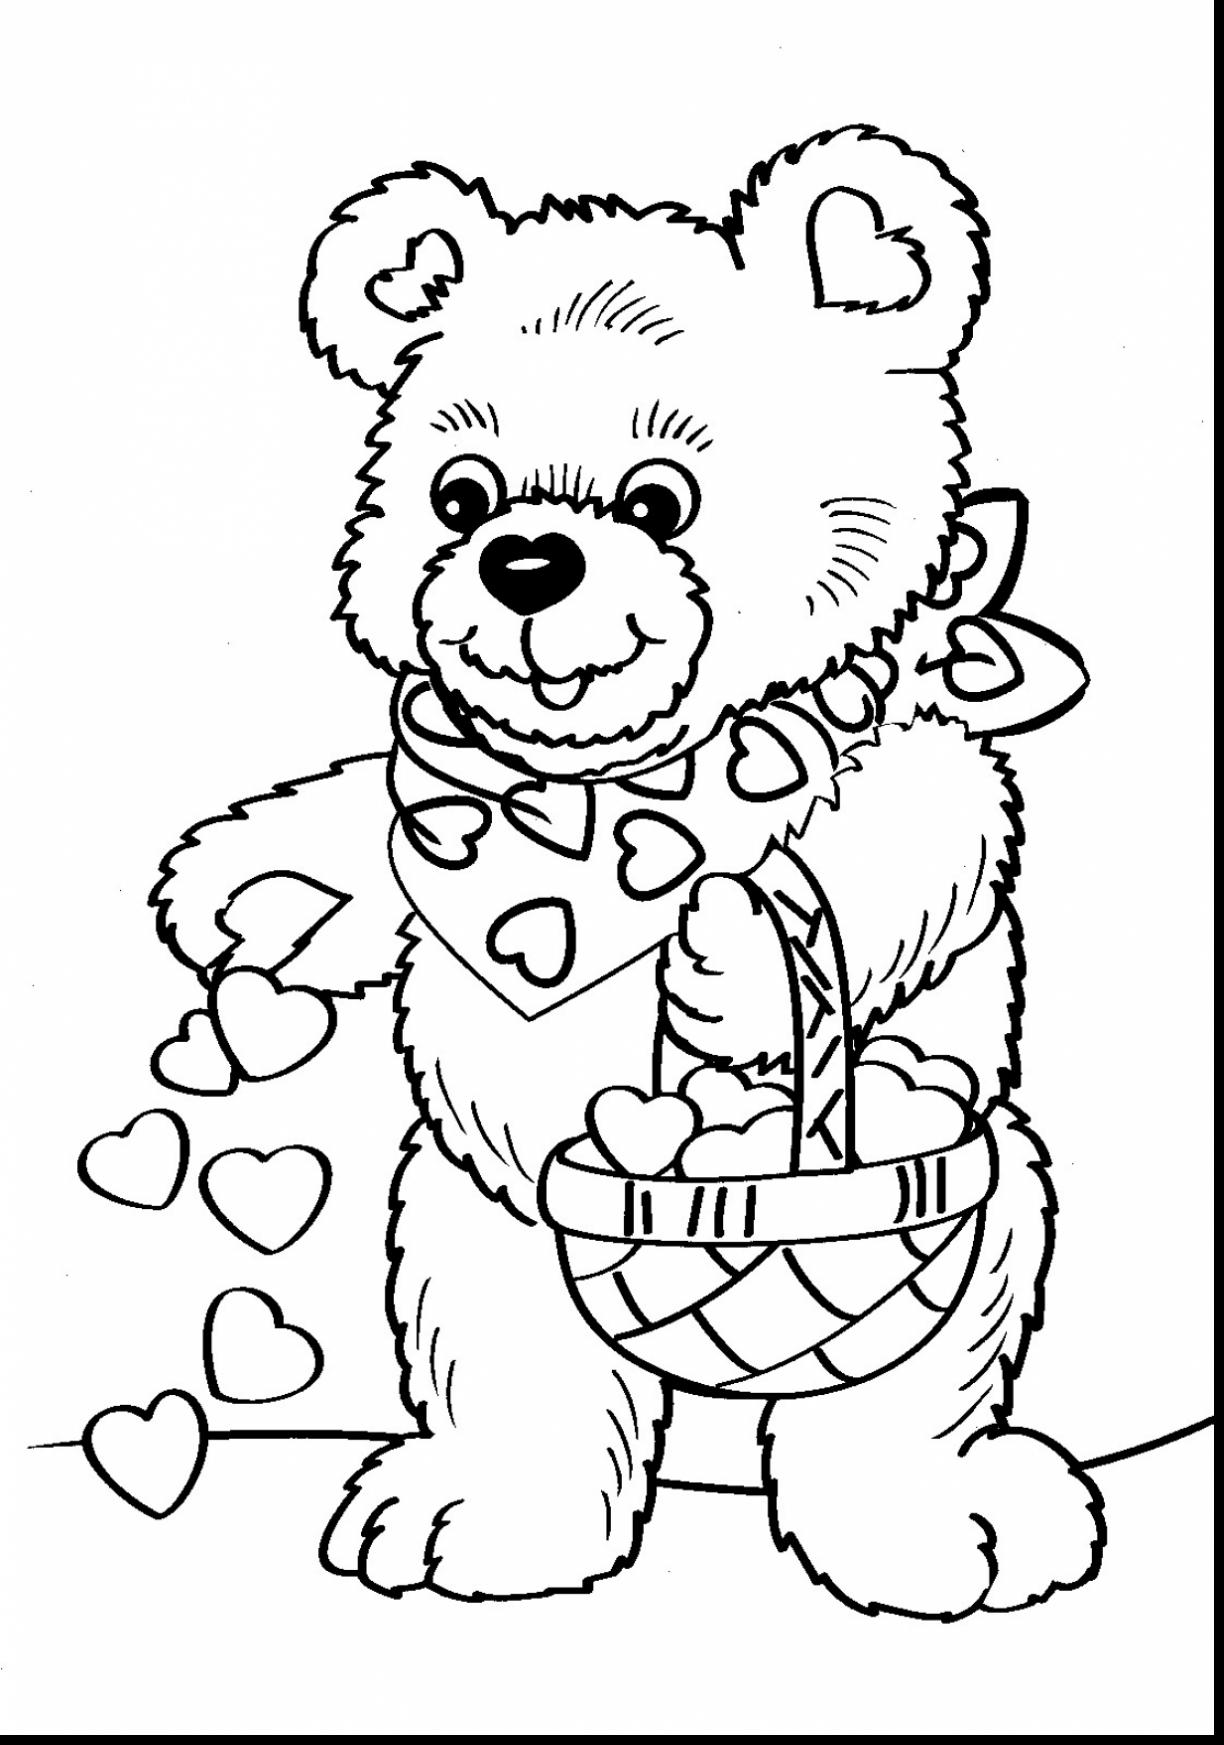 Valentines Day Coloring Pages For Kids At Getdrawings Com Free For